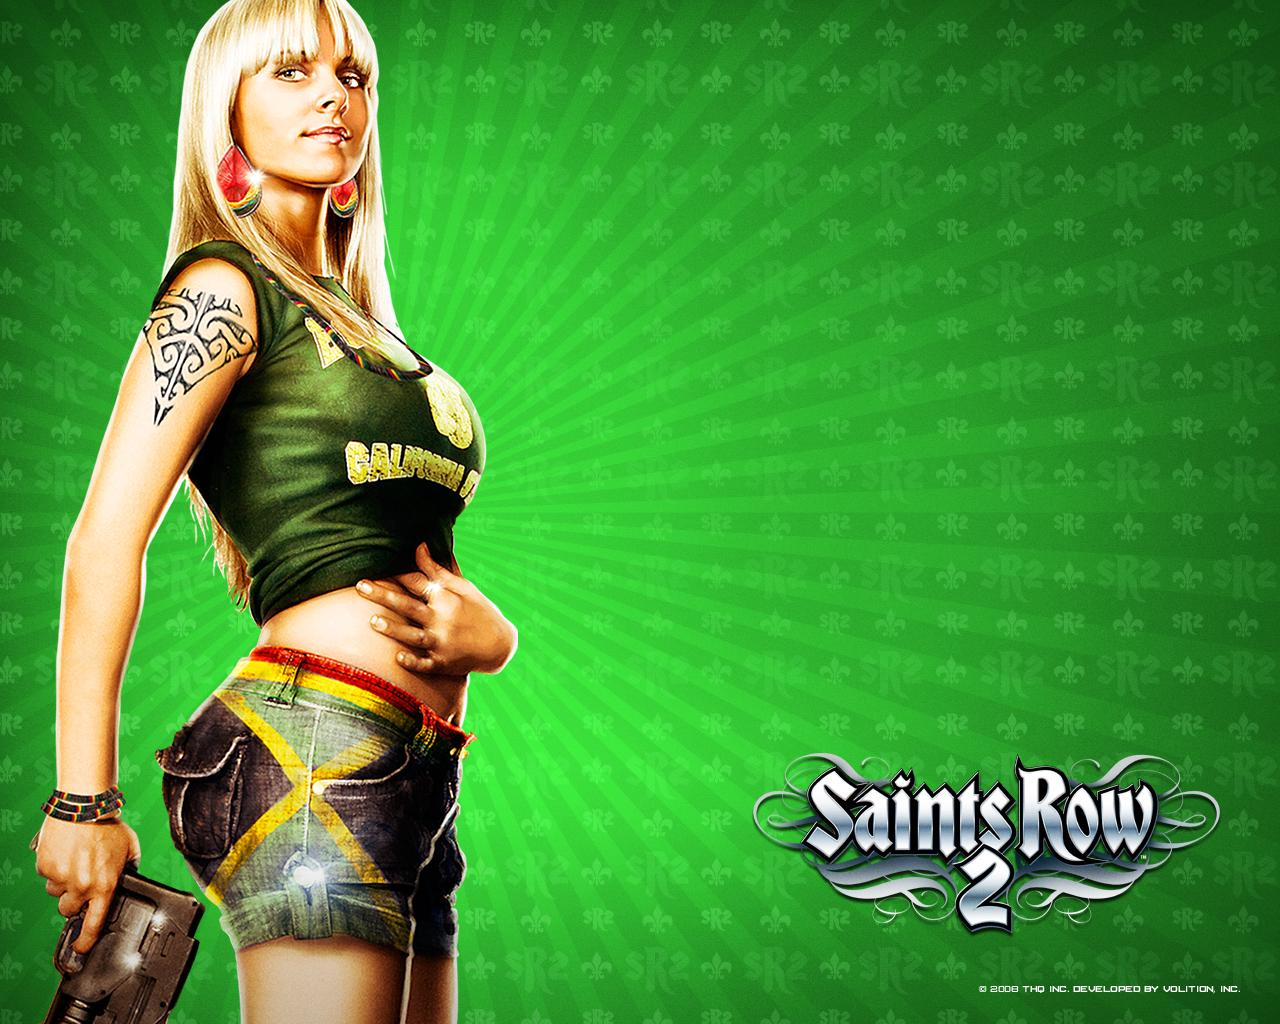 Saints Row 2 Wallpapers - Games Wallpapers #1